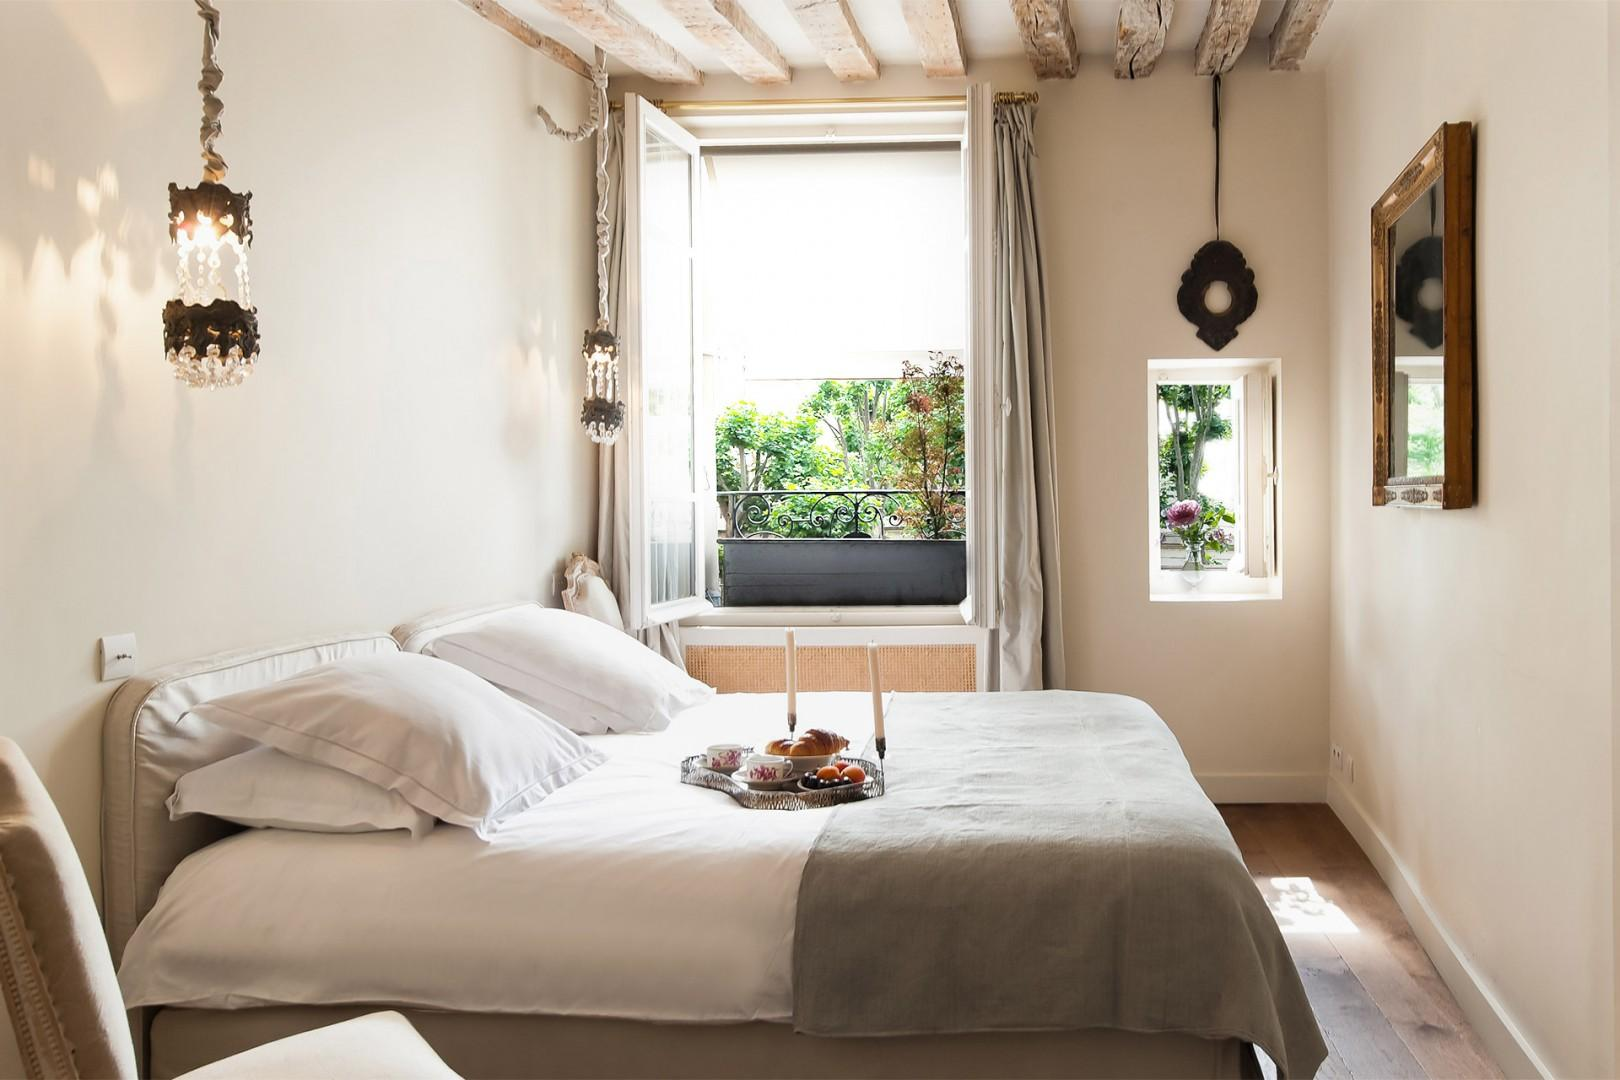 Two windows let lots of light into the bedroom.